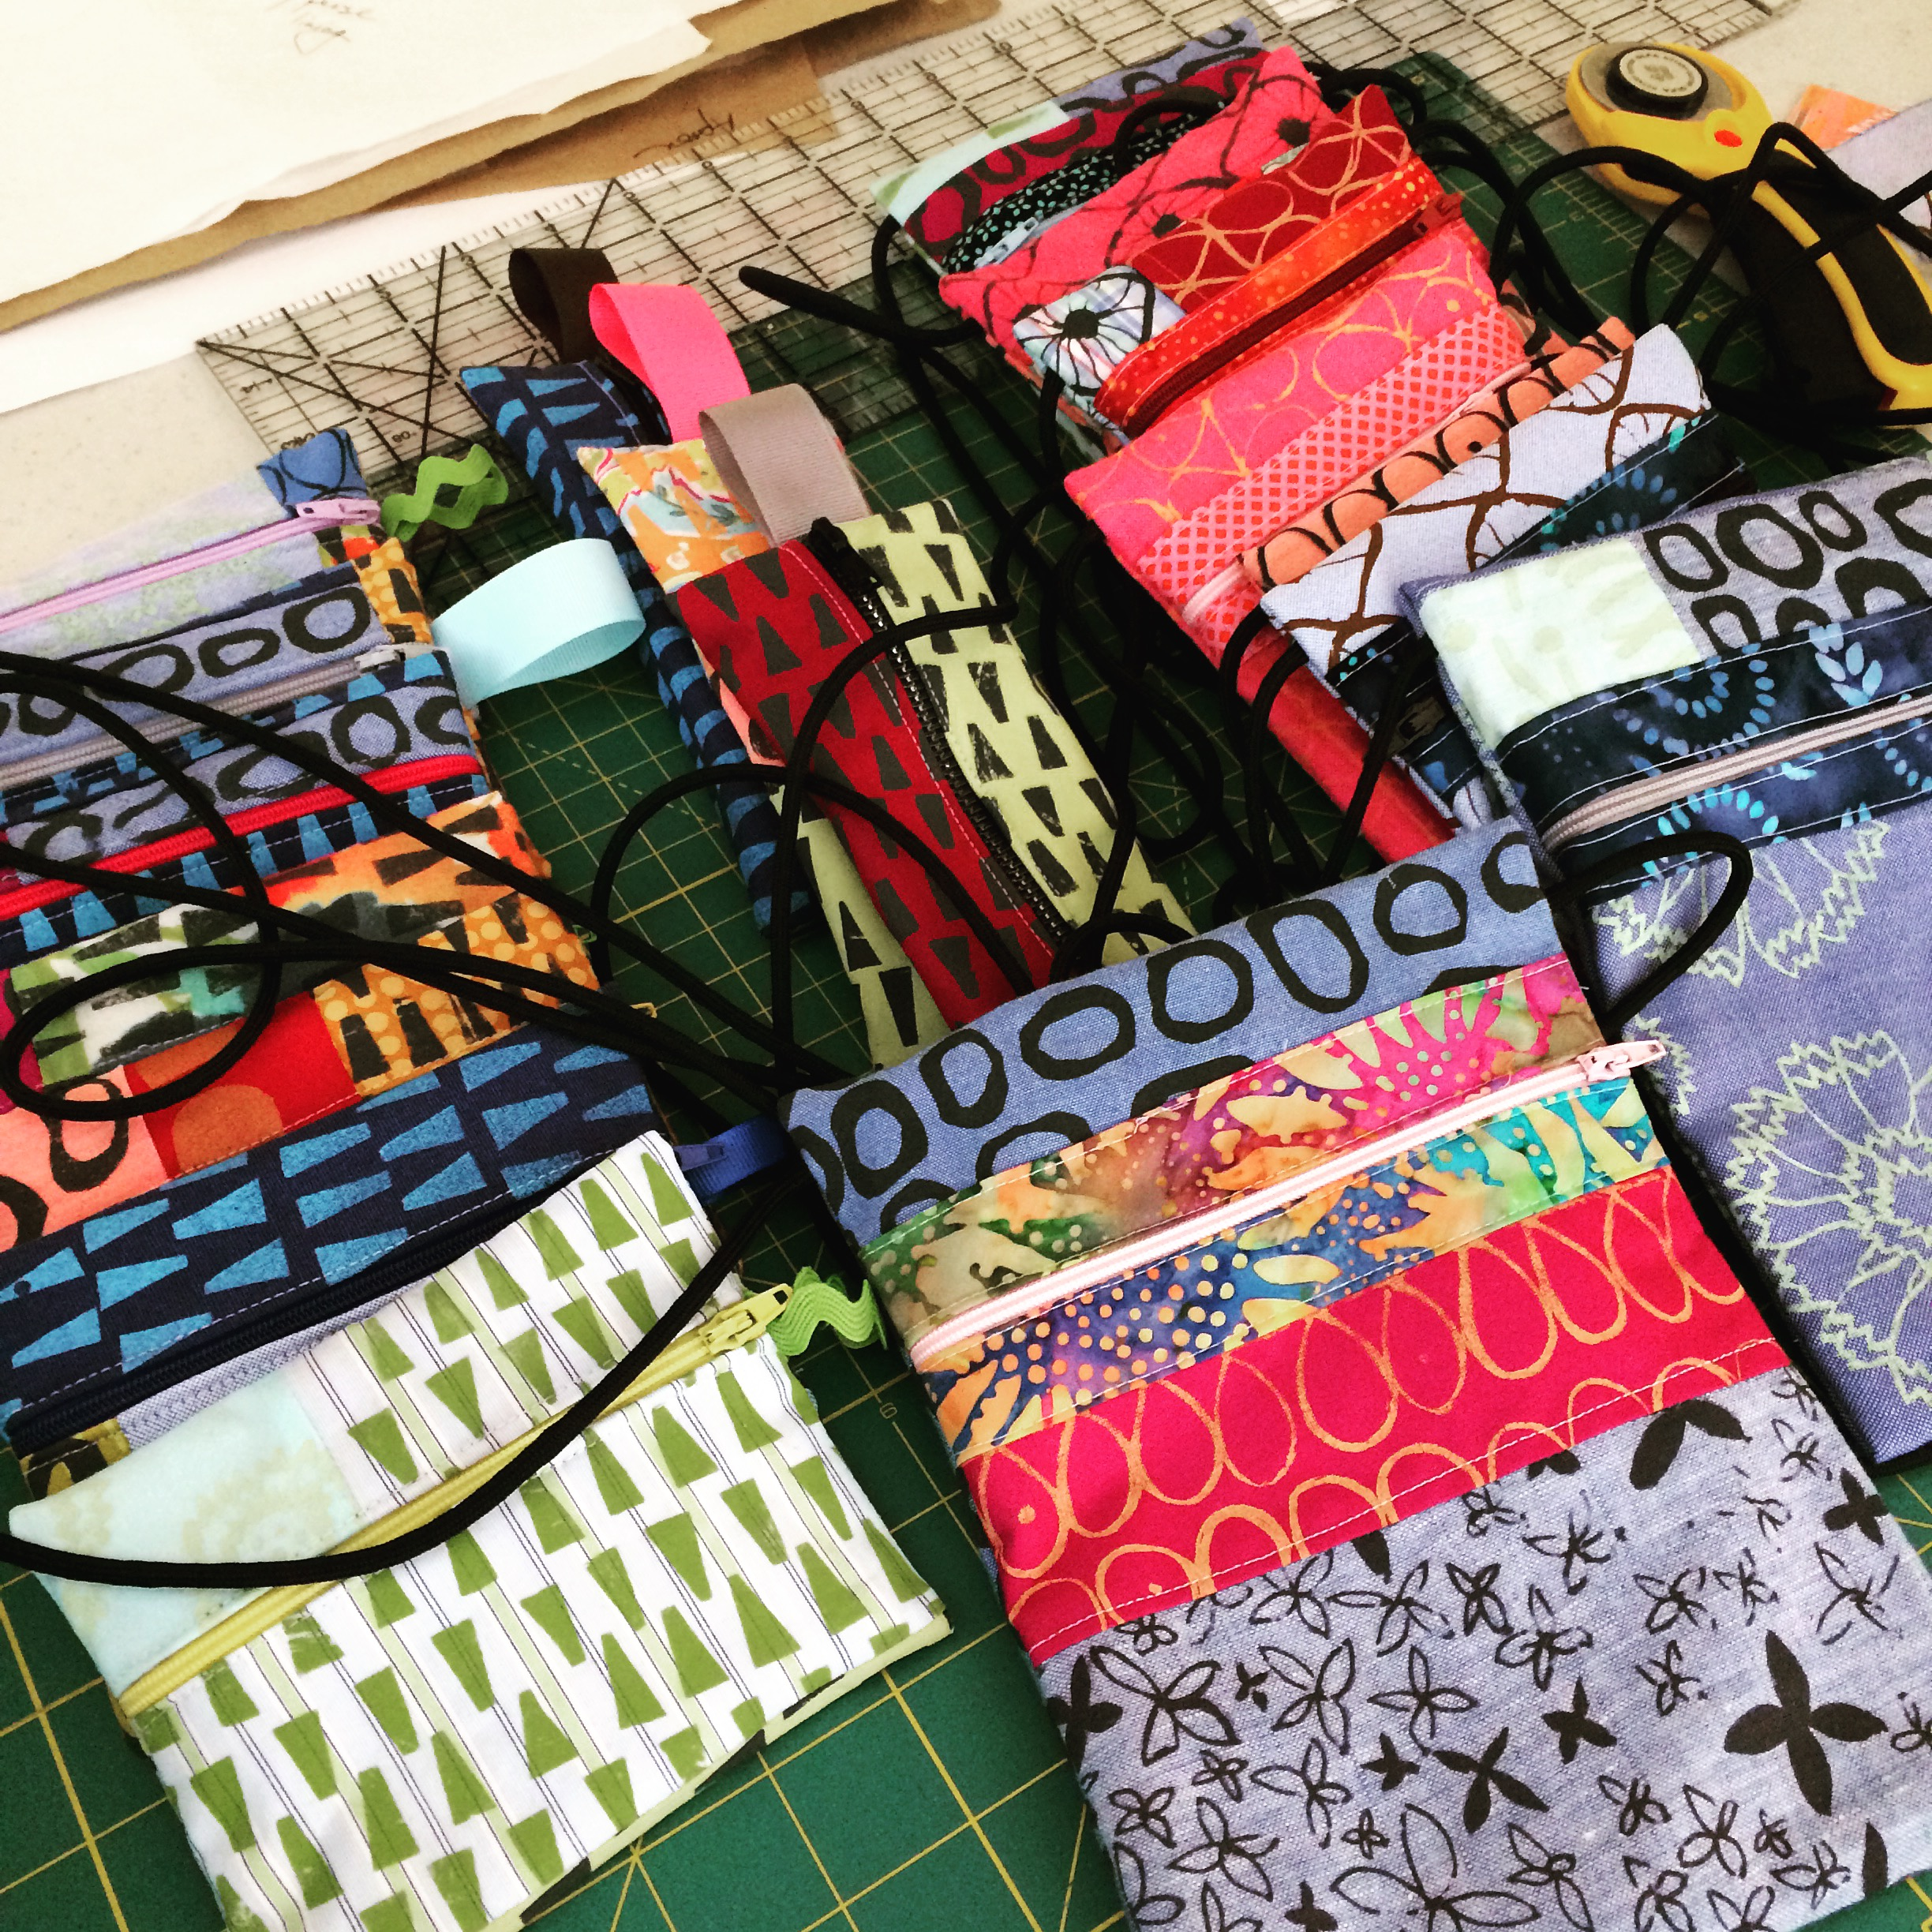 Hand printed and sewn bags of various sizes for various uses.